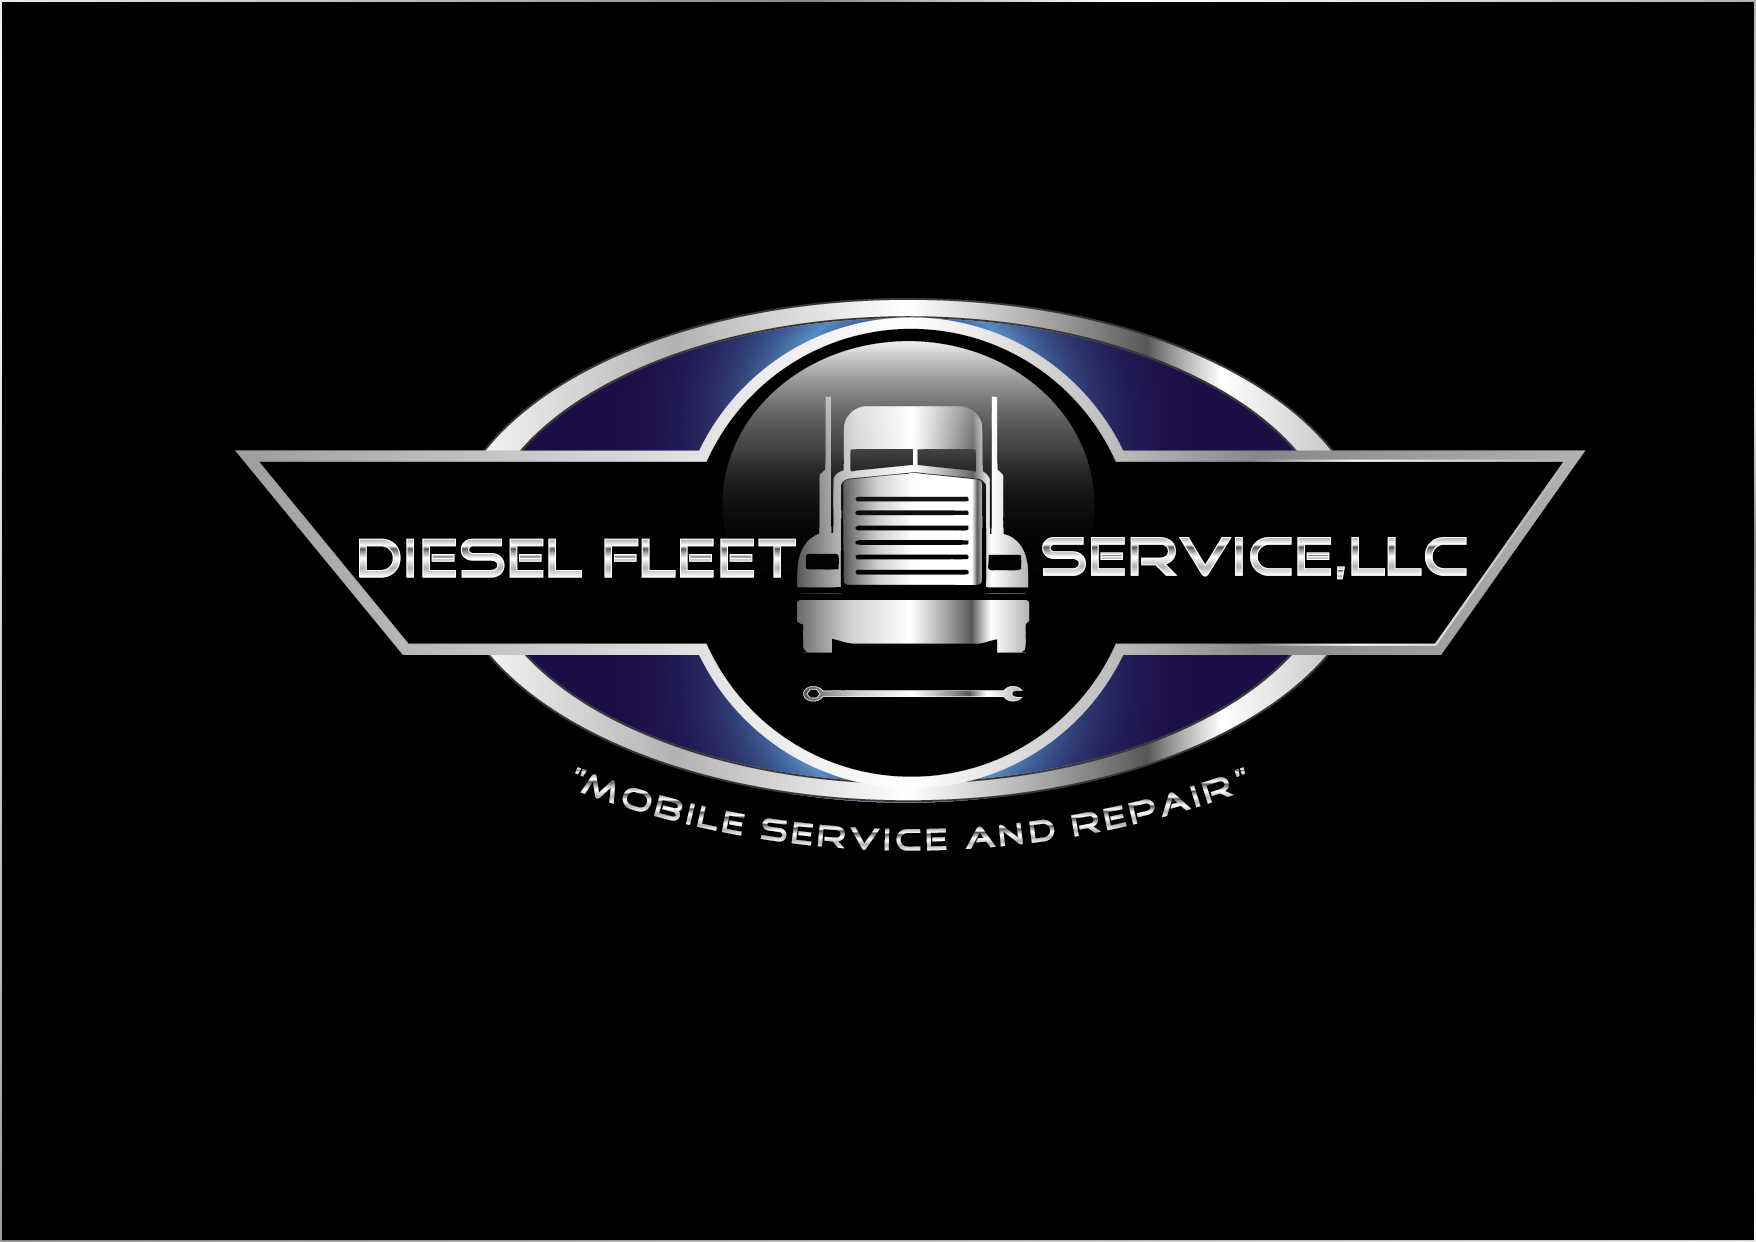 Logo Design by VENTSISLAV KOVACHEV - Entry No. 63 in the Logo Design Contest Artistic Logo Design for Diesel Fleet Service, LLC.